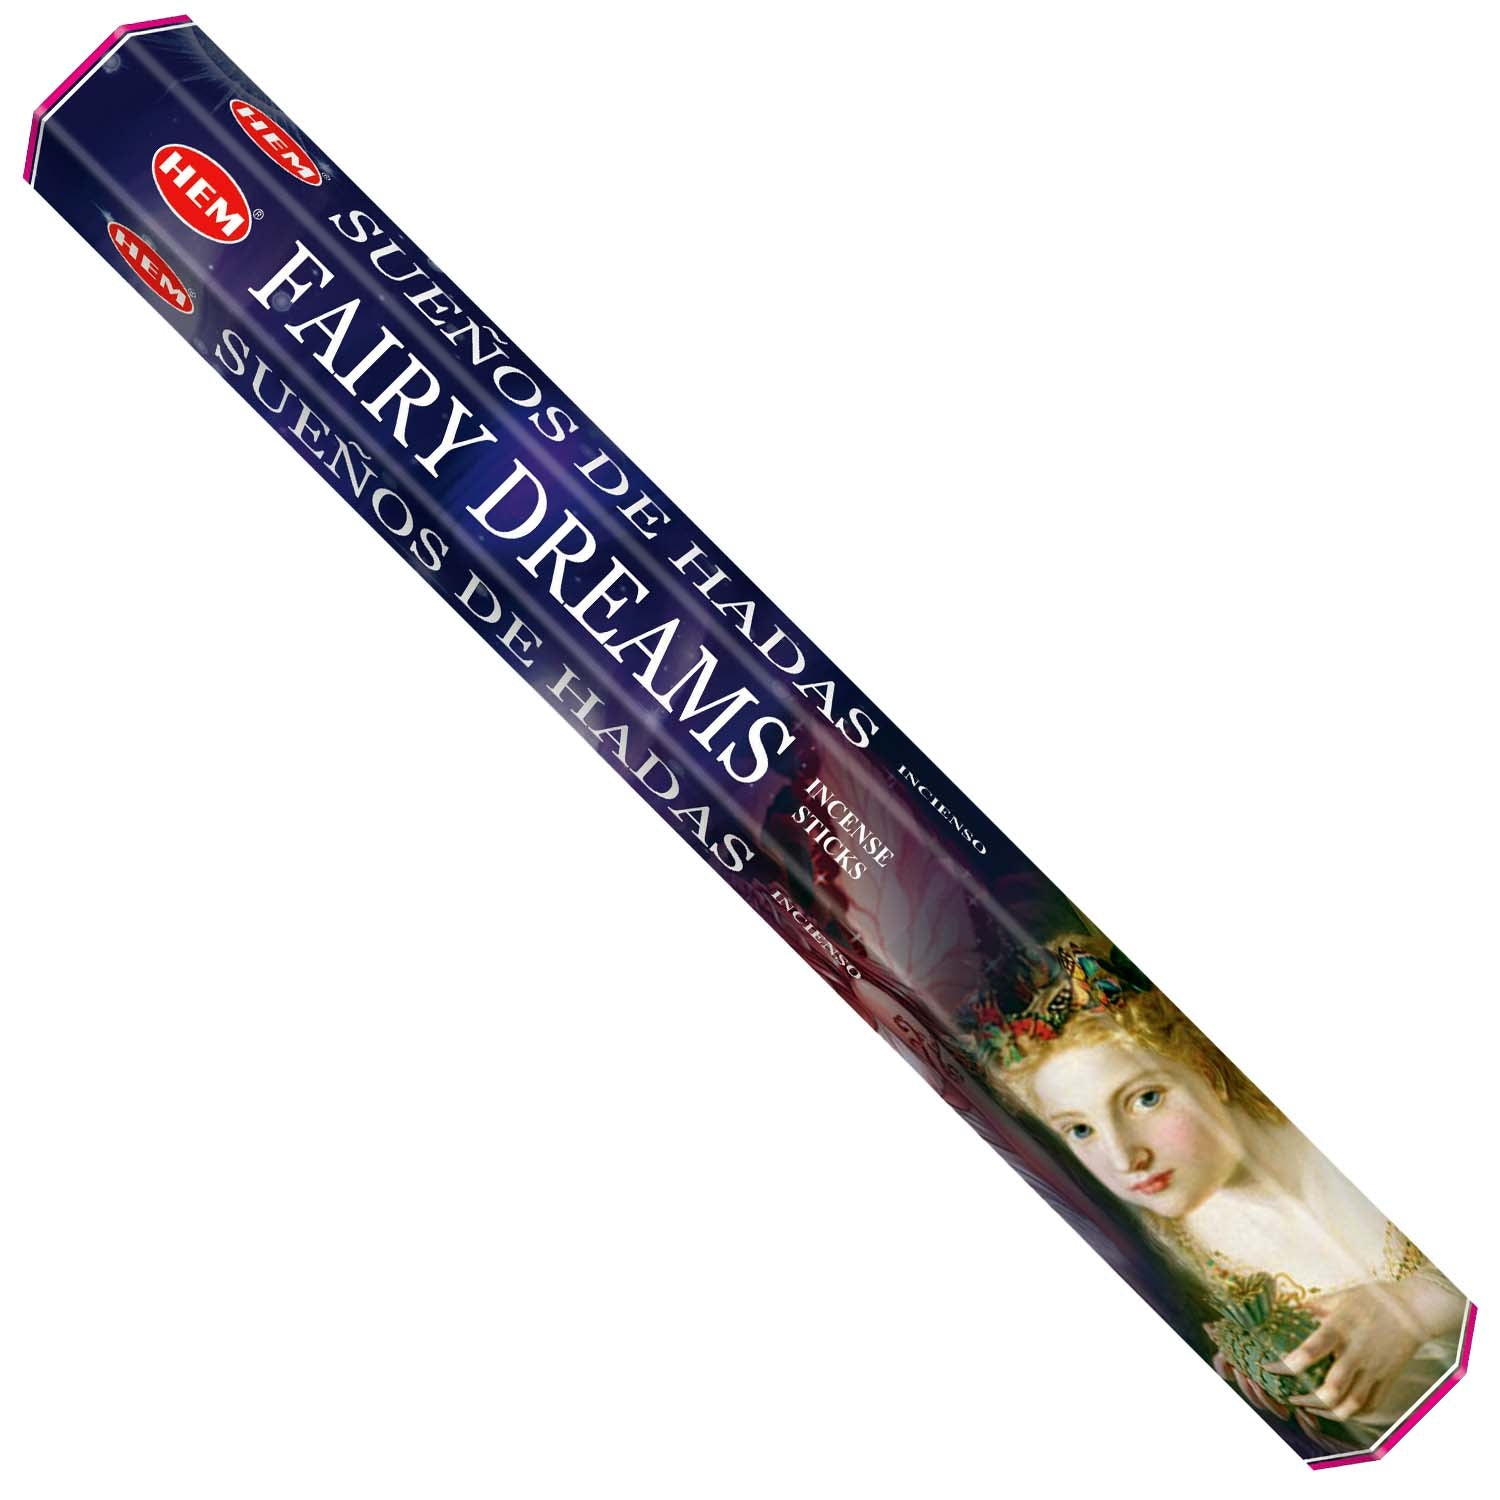 HEM Hexagon Fairy Dreams Incense 6 Pack - Rivendell Shop NZ